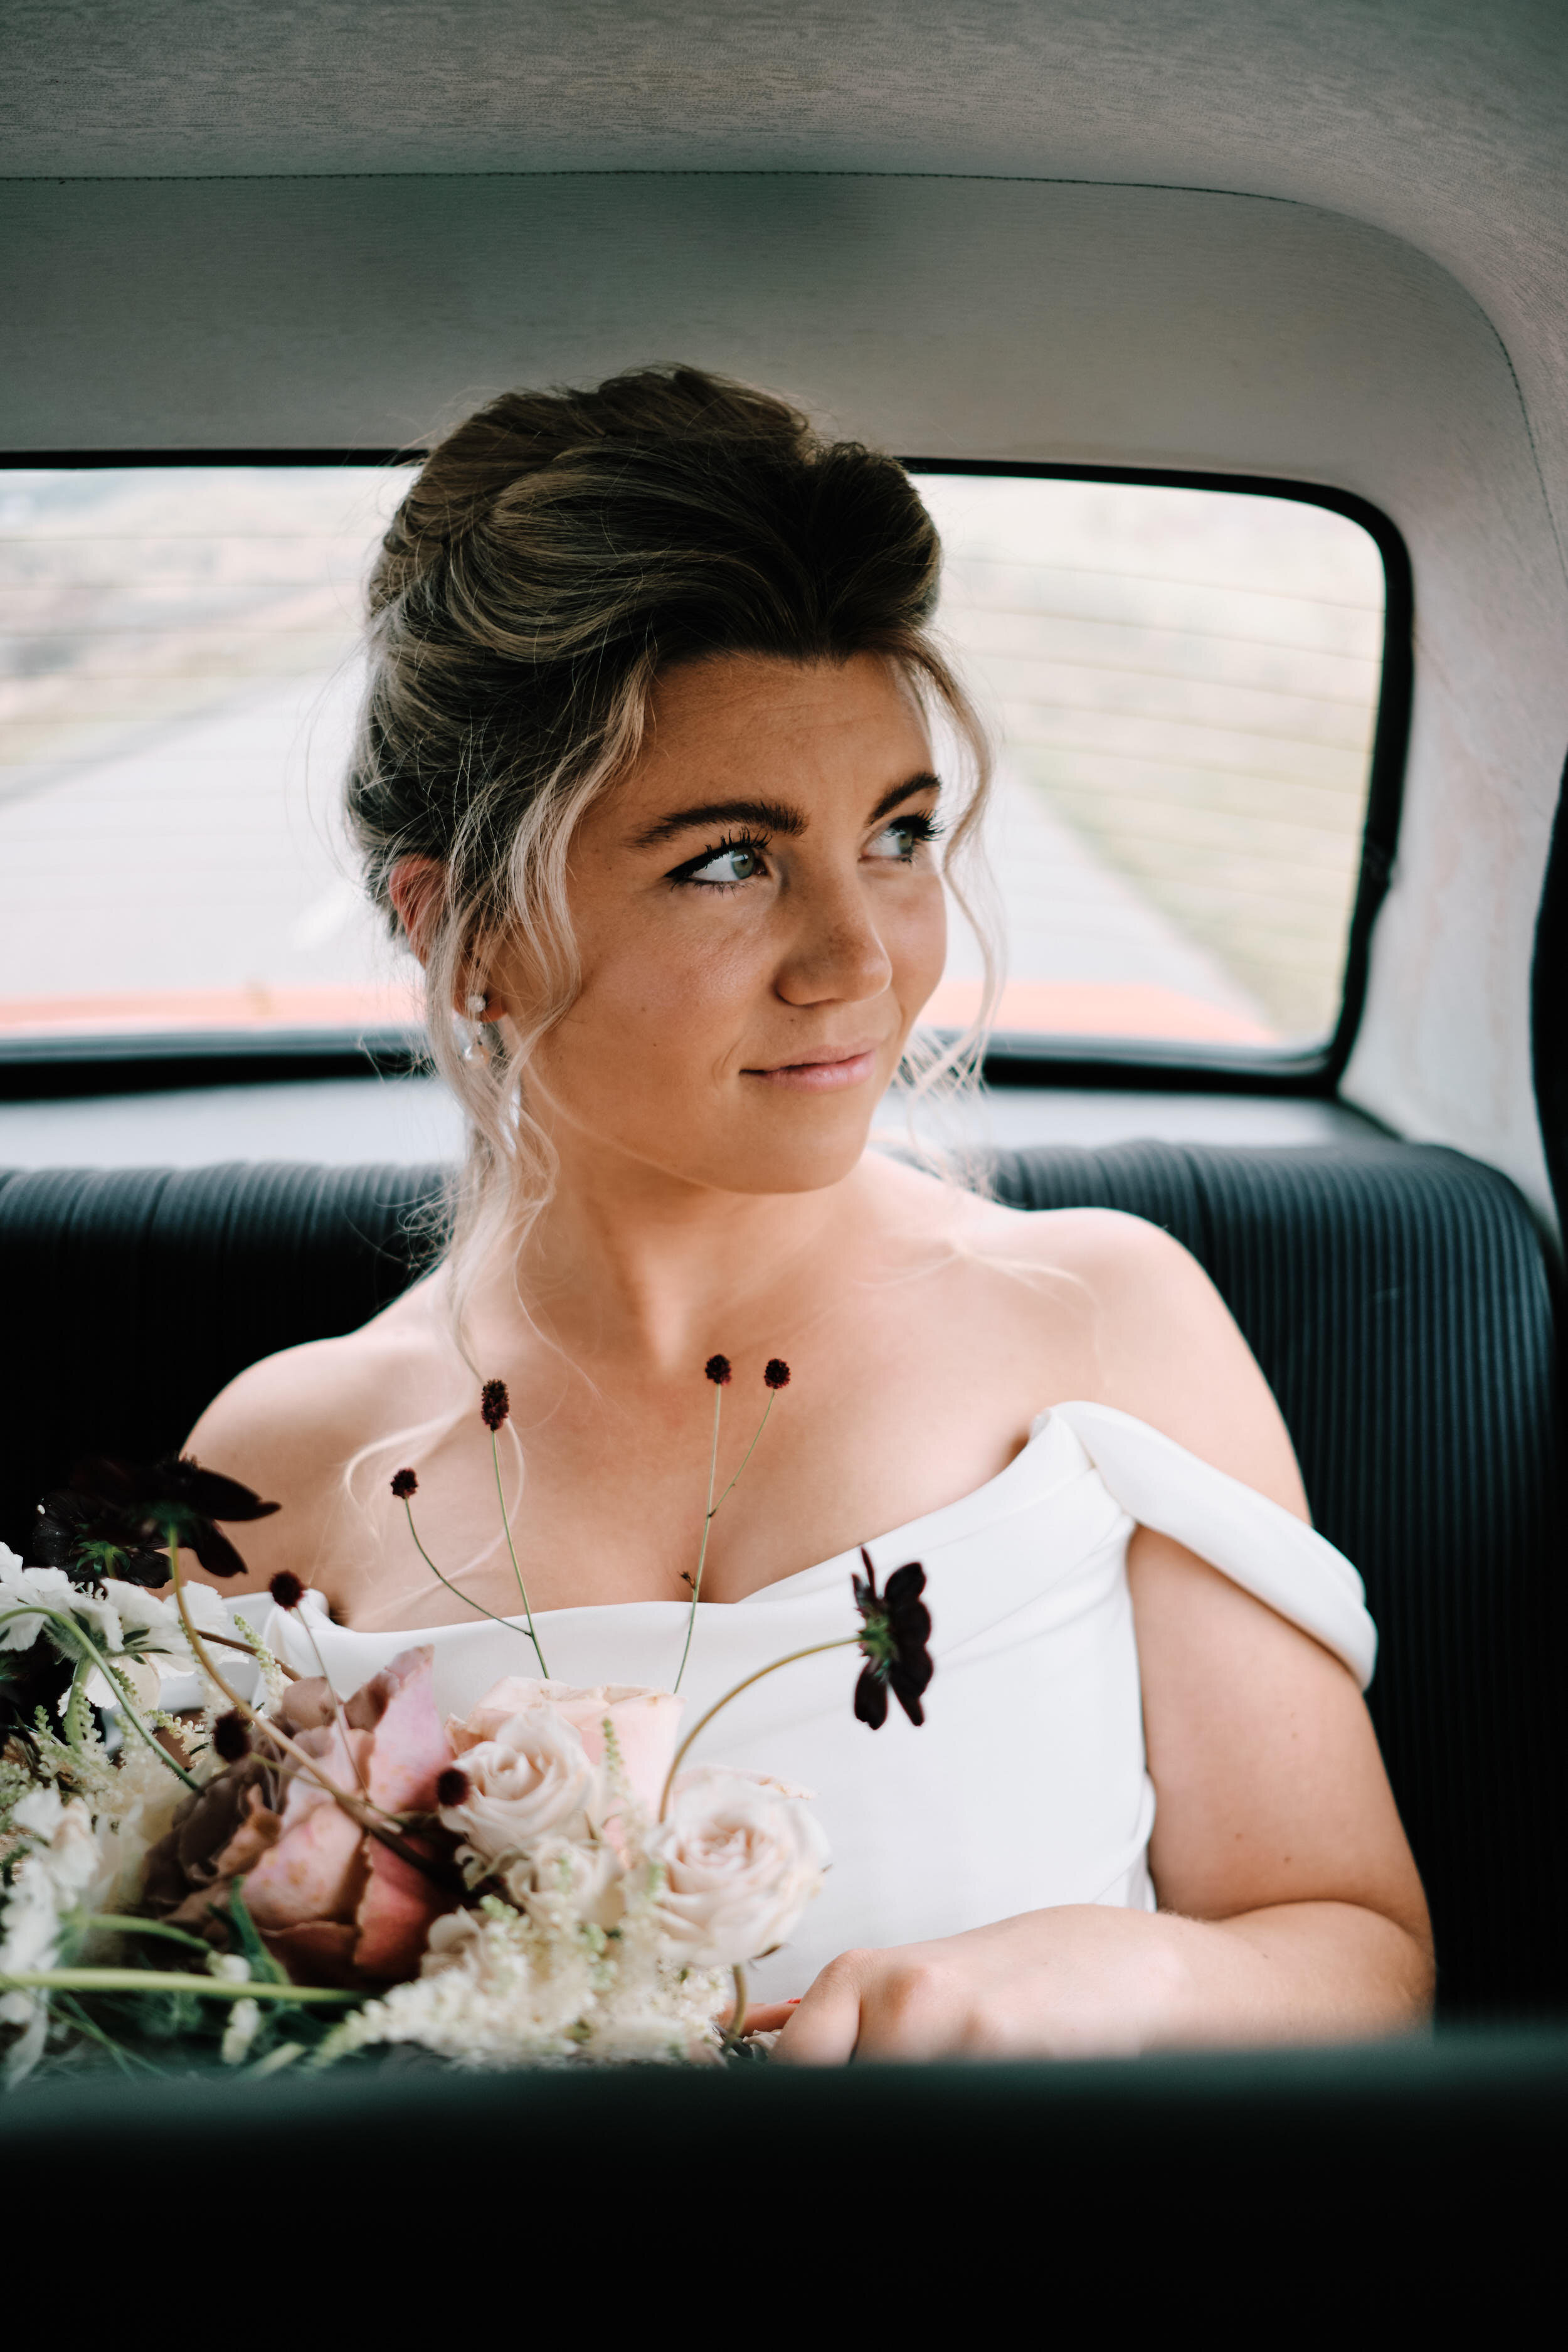 Bride on her way to ceremony vintage car documentary wedding photography 2020